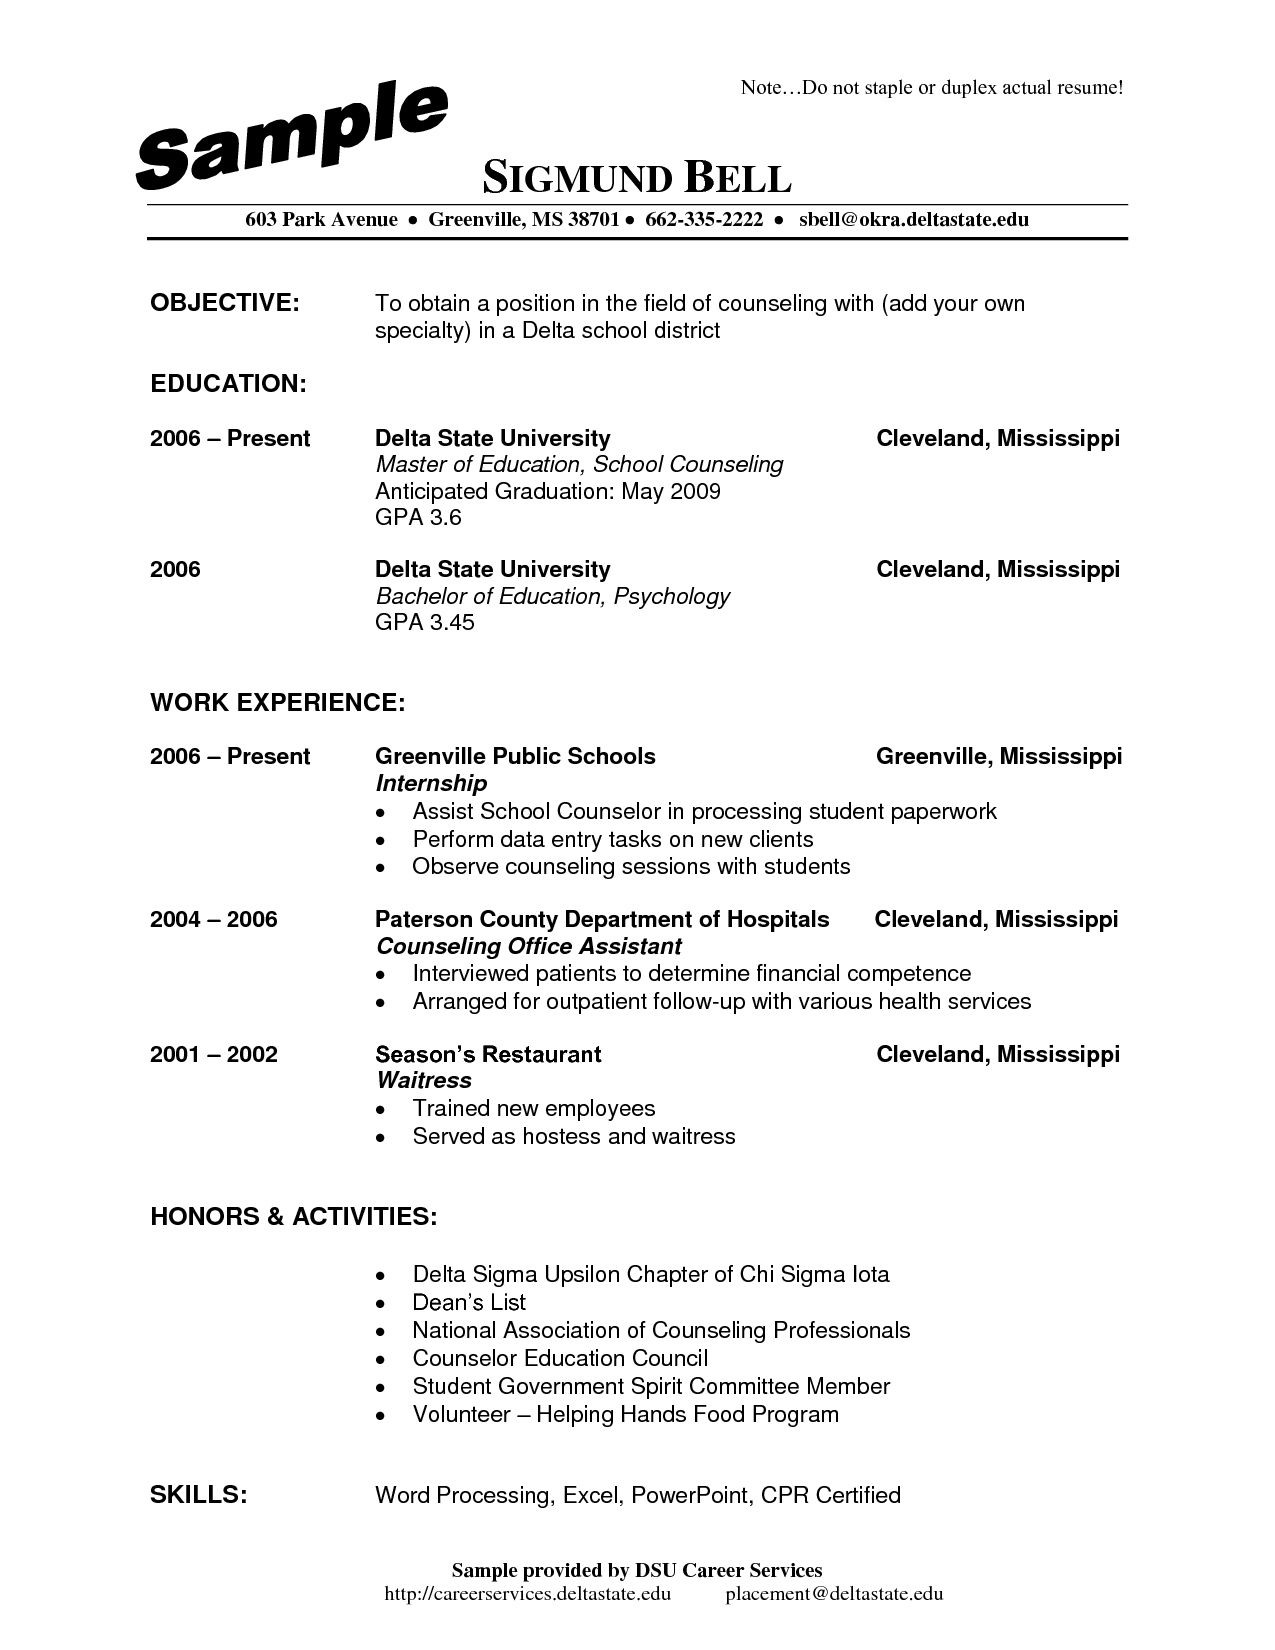 School Counselor Resume in 2020 Resume examples, Resume